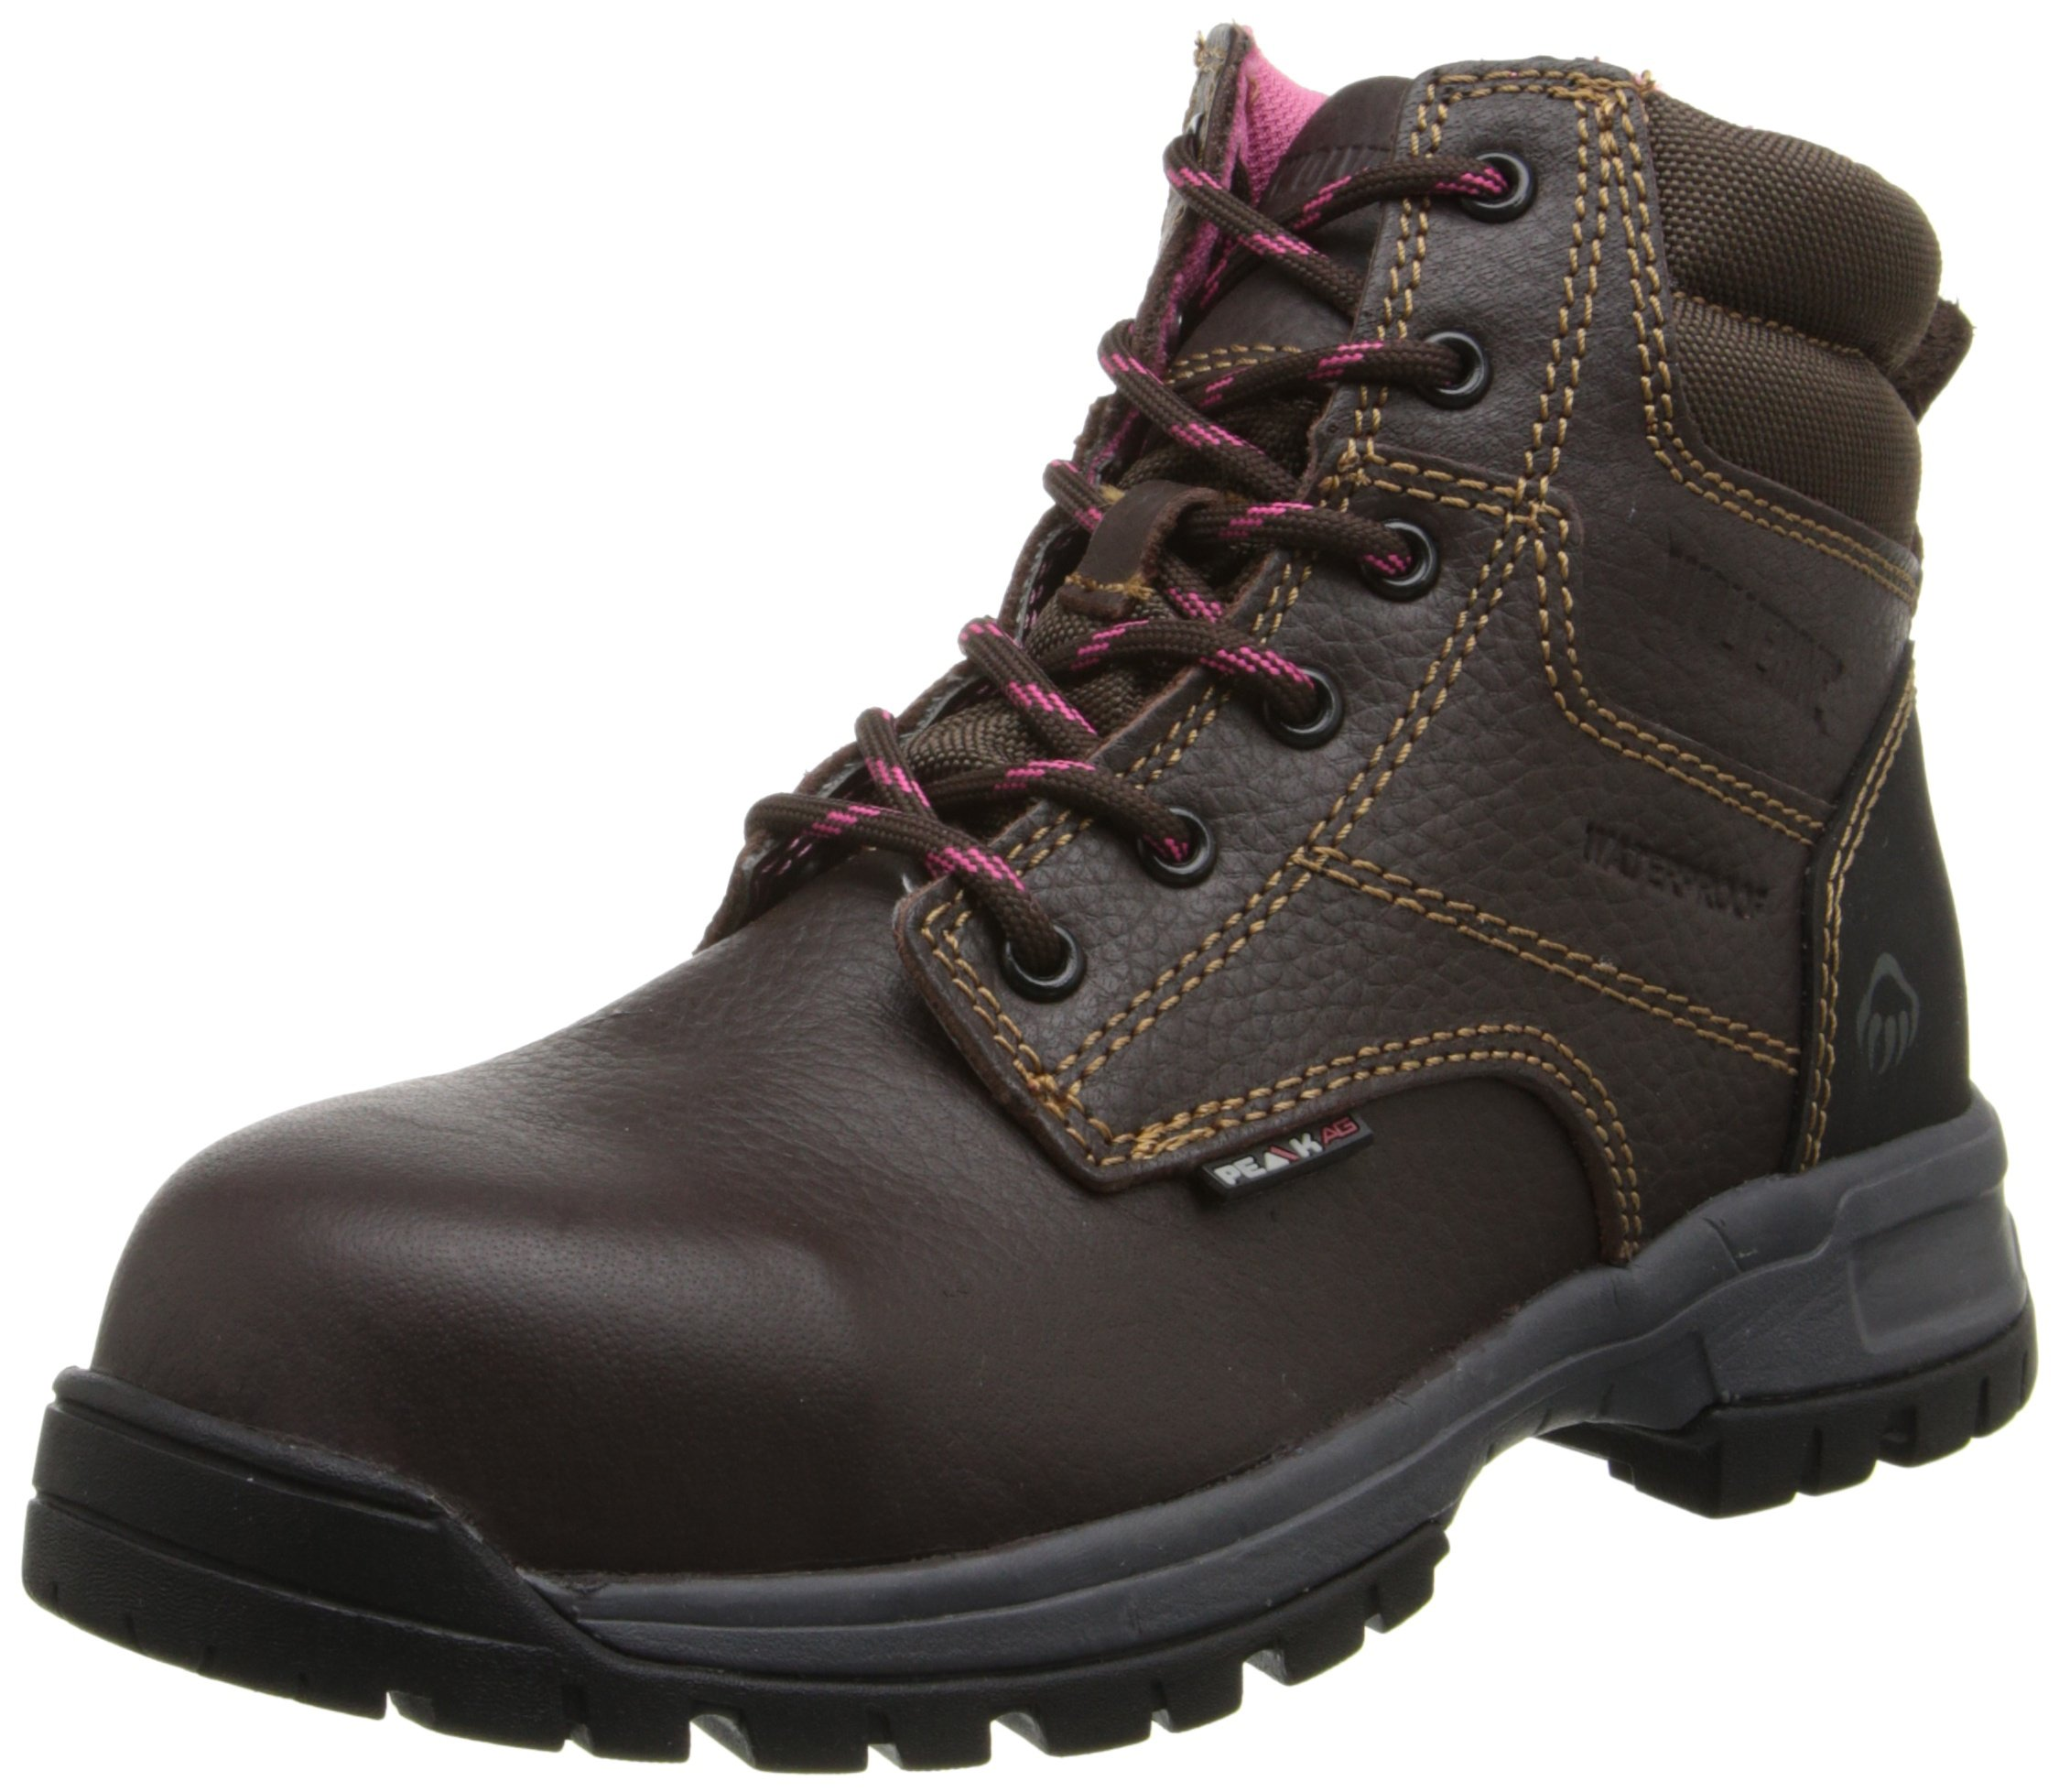 Wolverine Women's W10180 Piper Safety Toe Work Boot, Brown, 7.5 M US